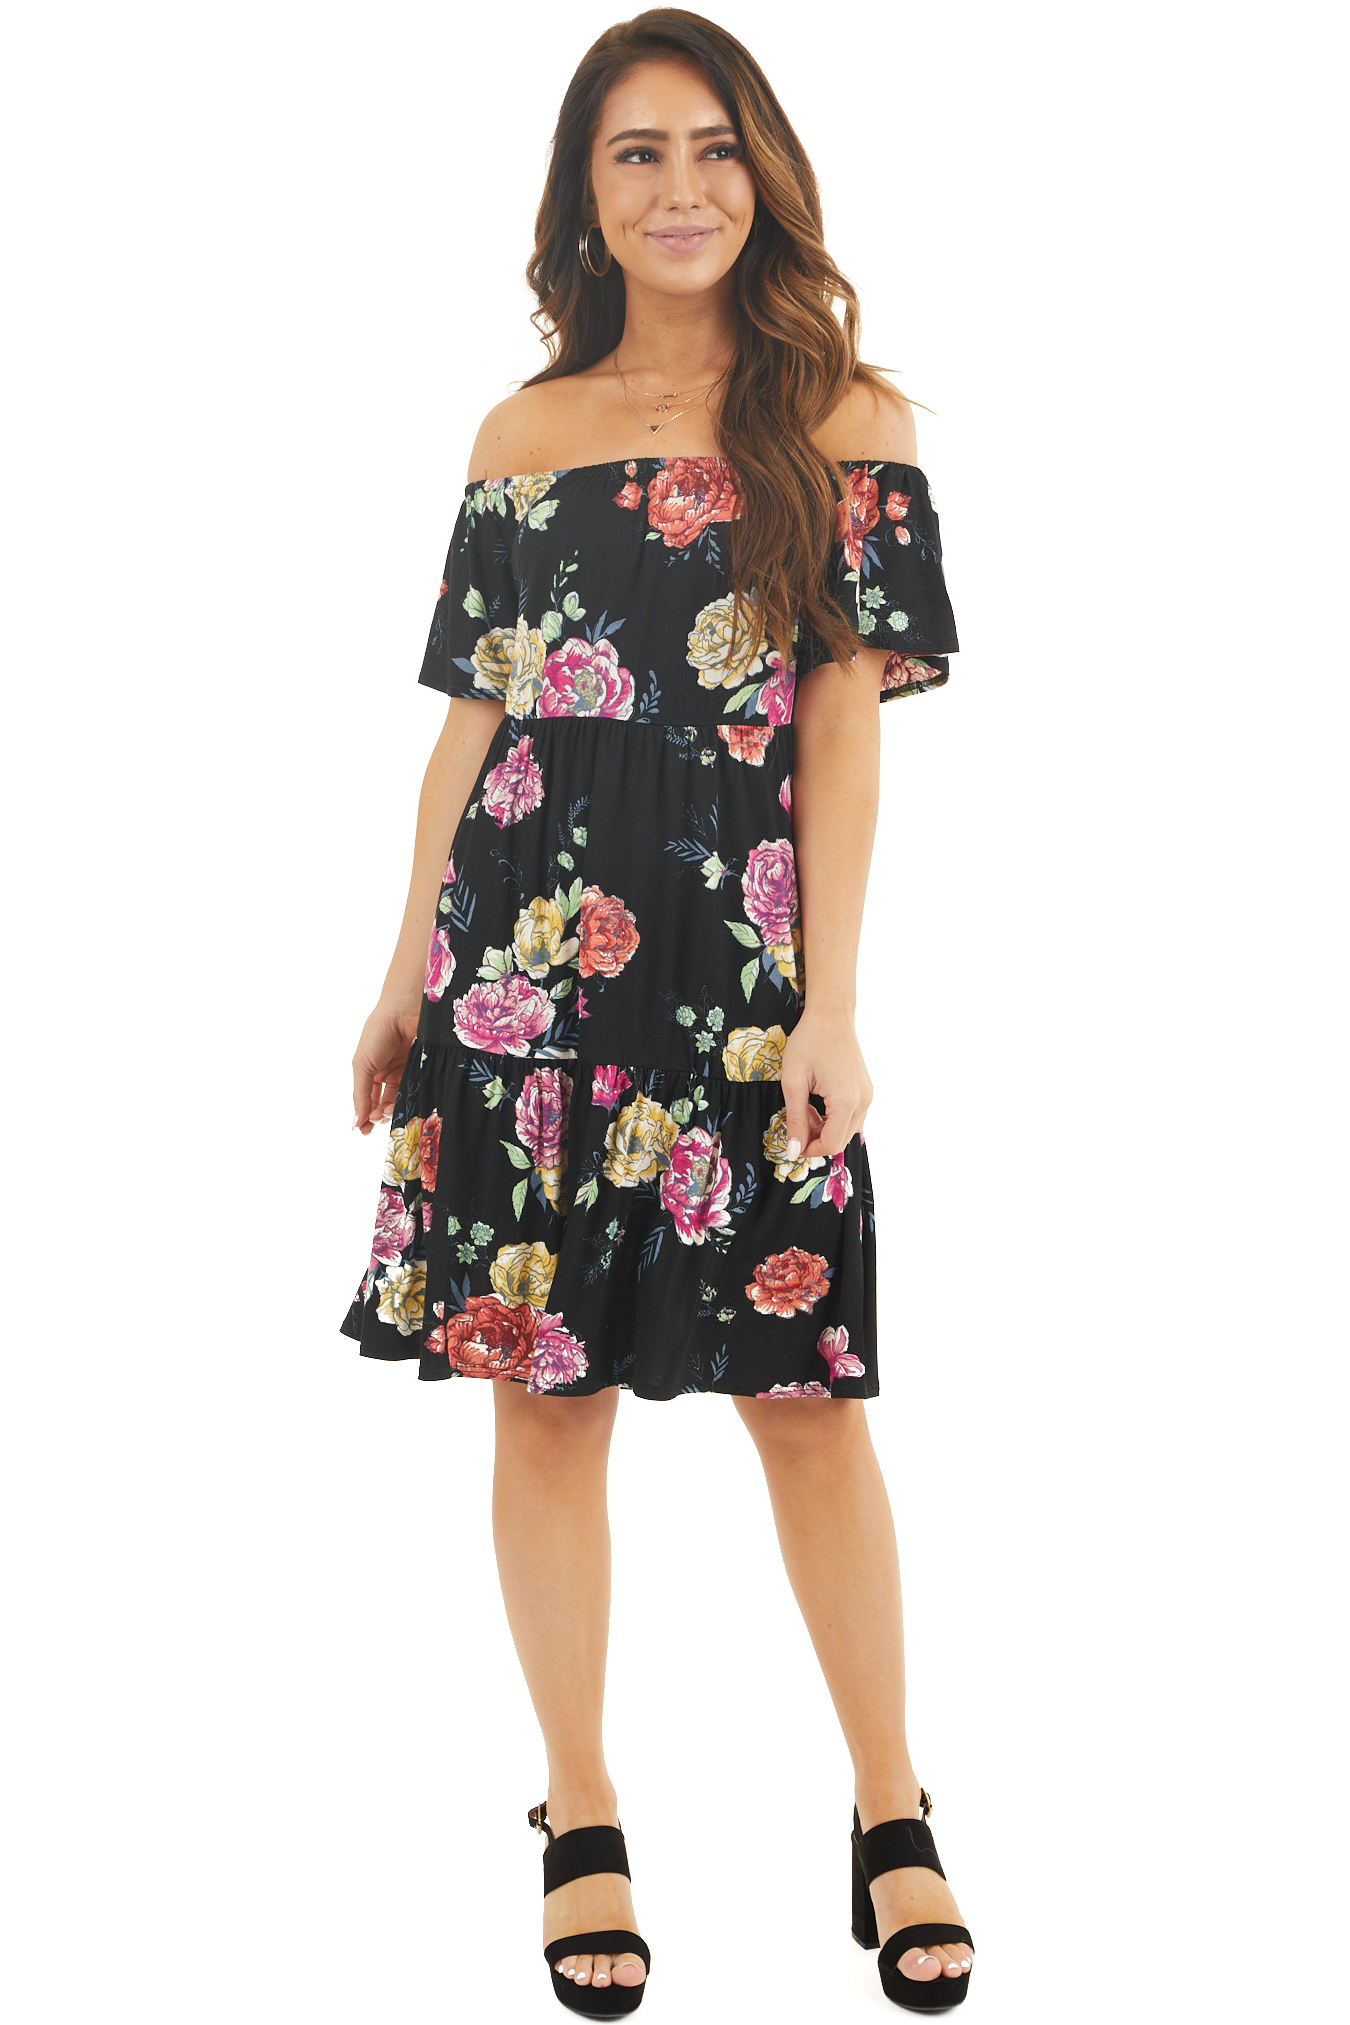 Obsidian Floral Off the Shoulder Short Sleeve Dress